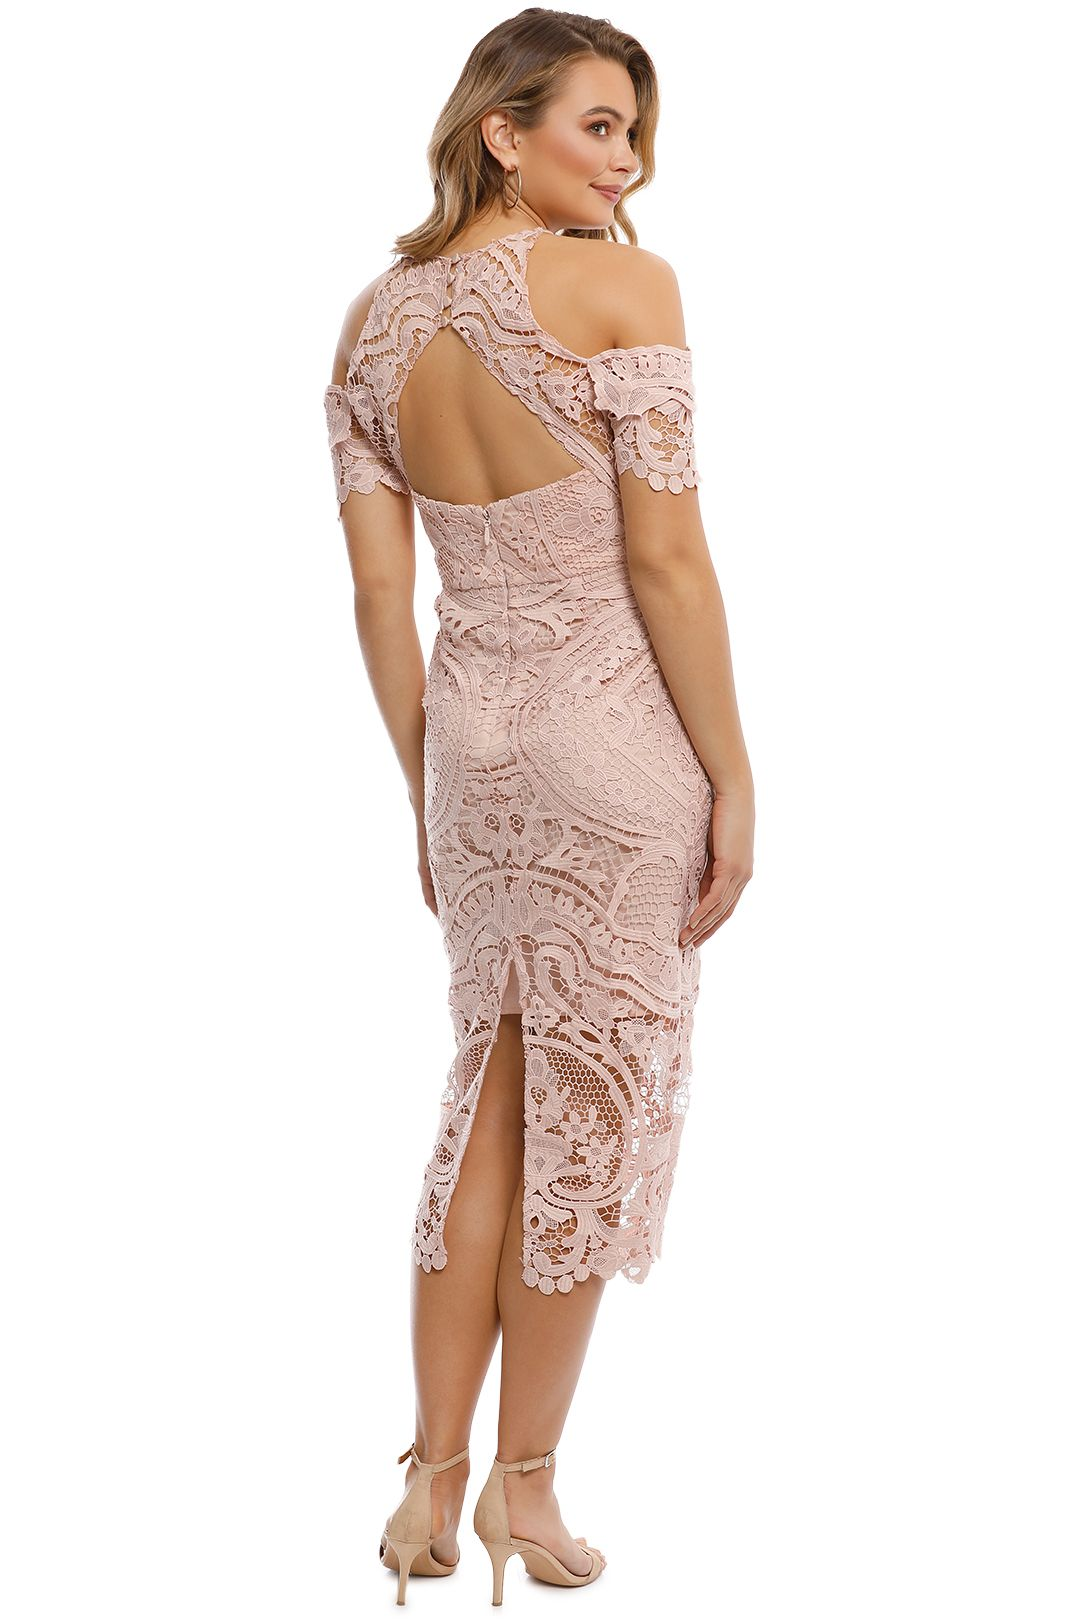 Thurley - Bouquet Dress - Nude - Back